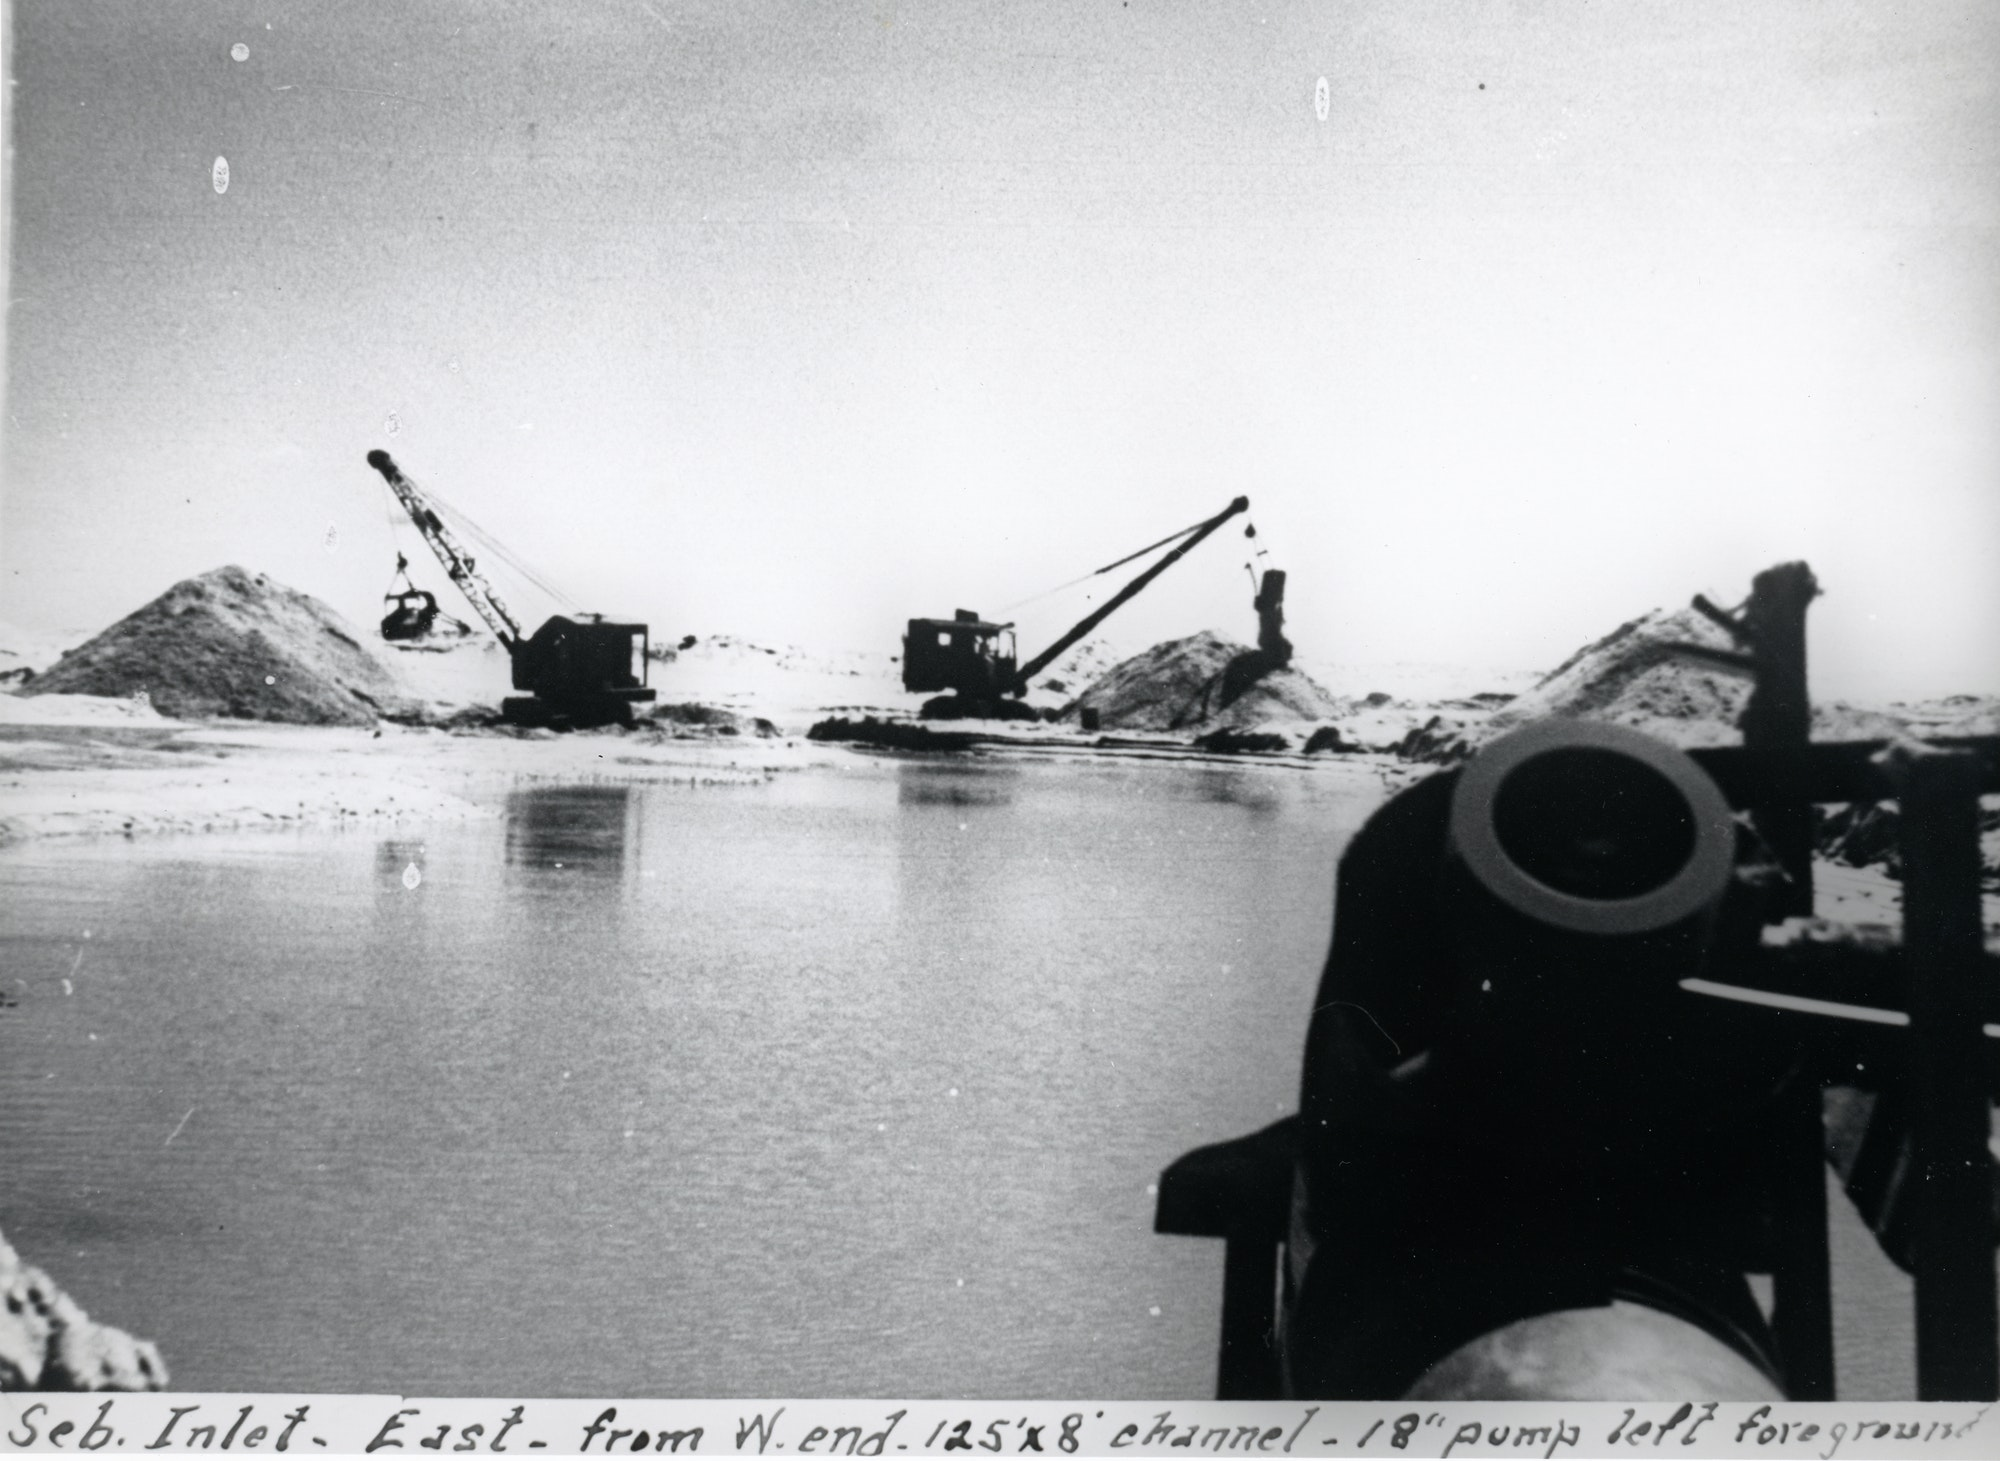 Two excavators moving sand in background with water and 18 inch pump in foreground